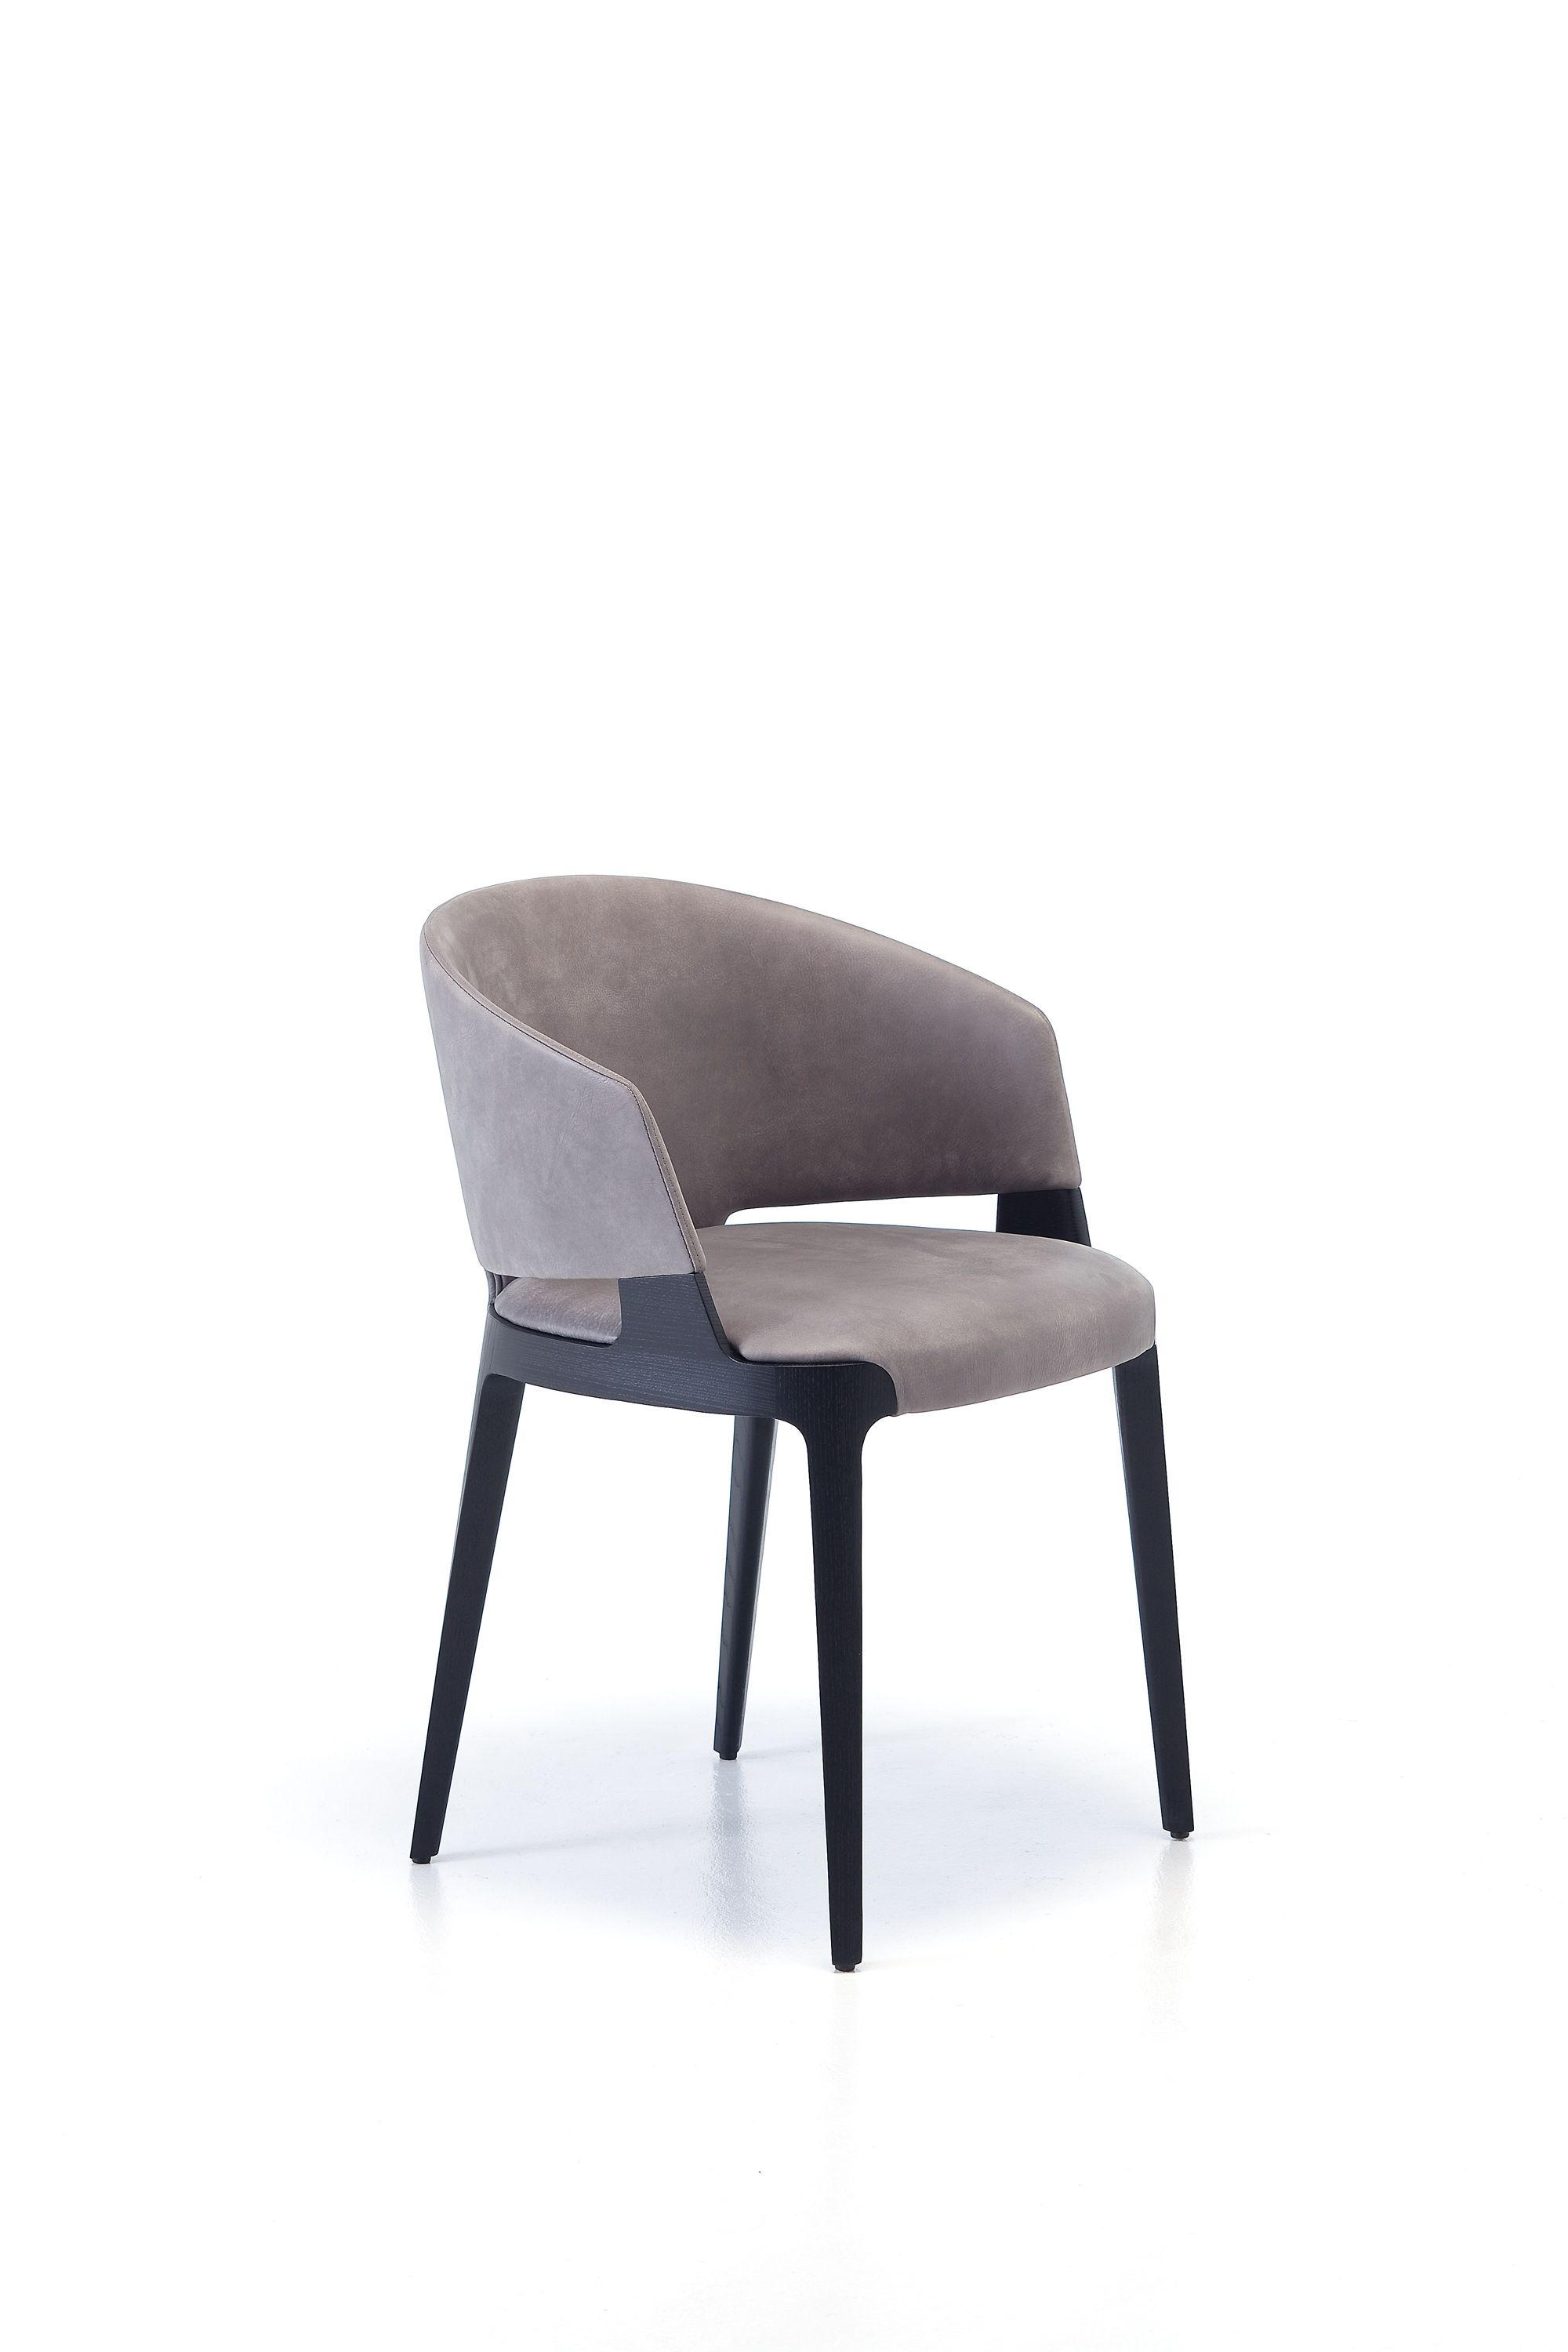 Classic Designer Chair Potocco Velis Tub Chair Manufacturer Potocco